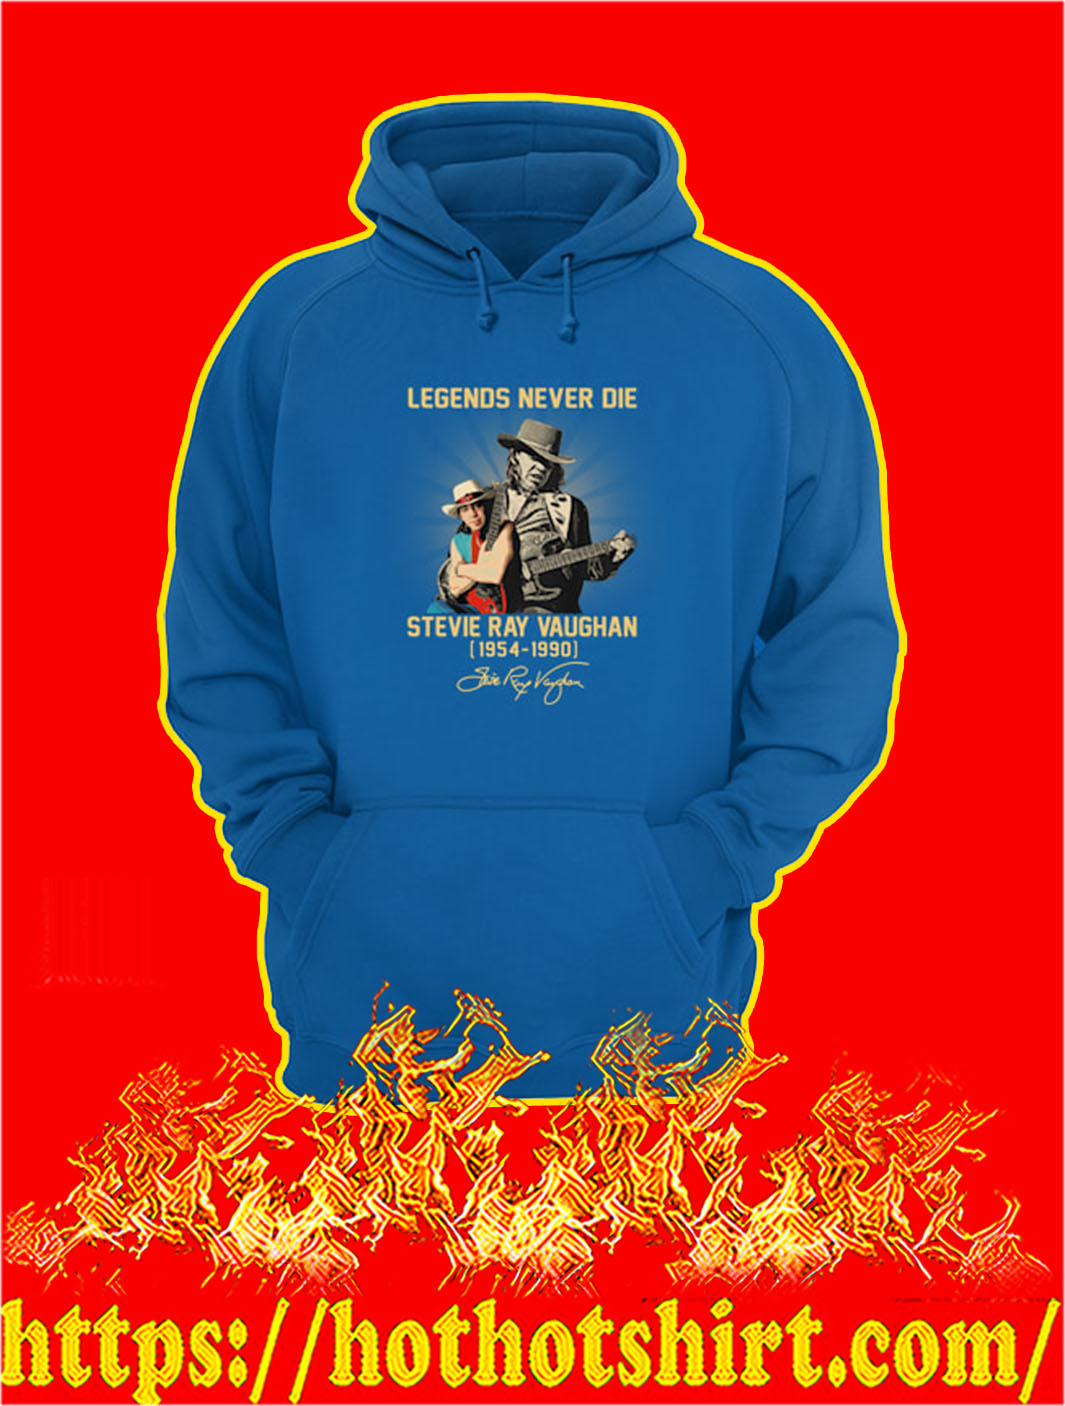 Legends Never Die Stevie Ray Vaughan 1954 1990 hoodie